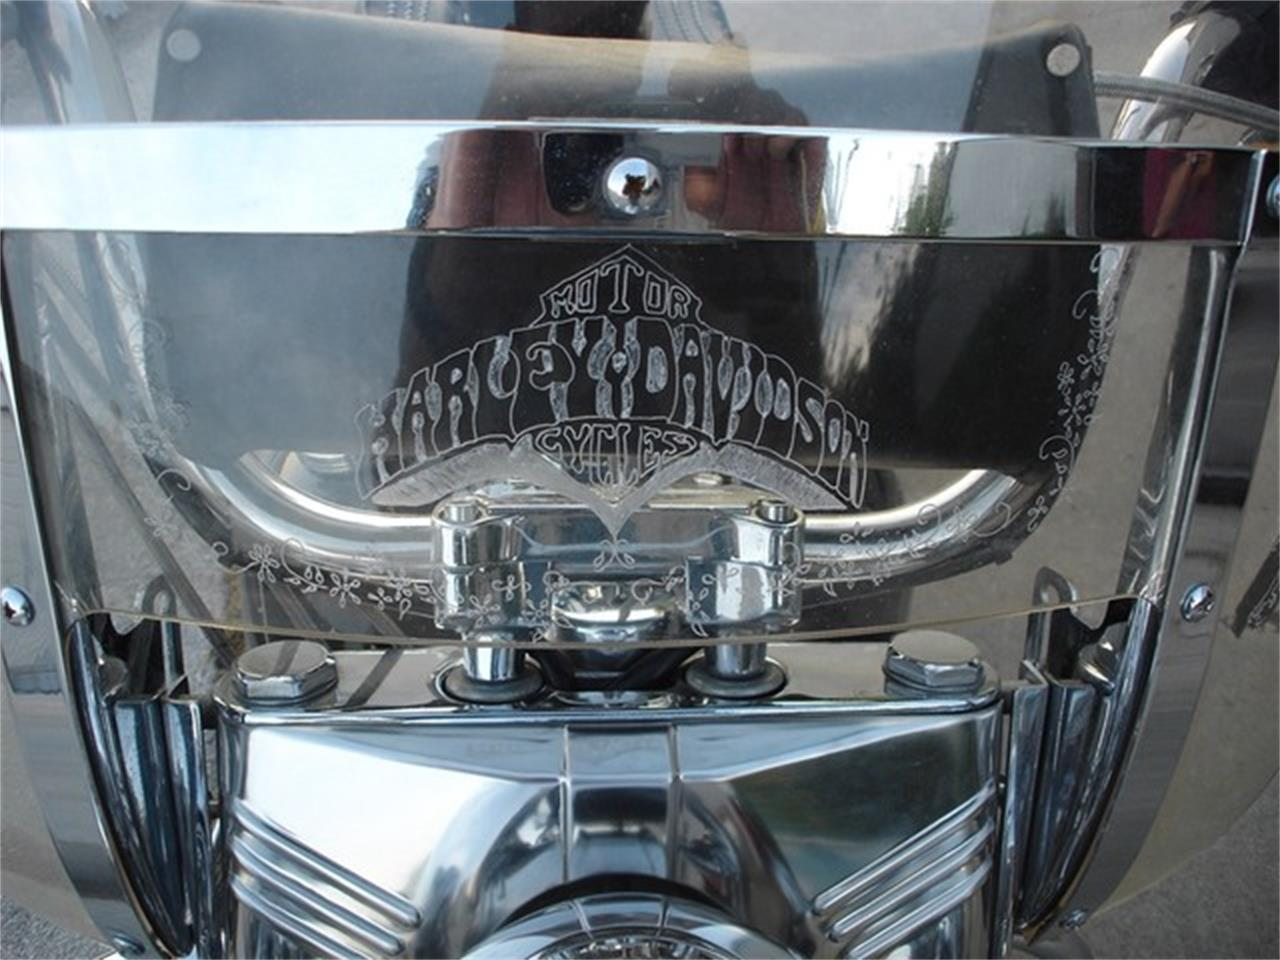 1990 Harley-Davidson Motorcycle for sale in Liberty Hill, TX – photo 33